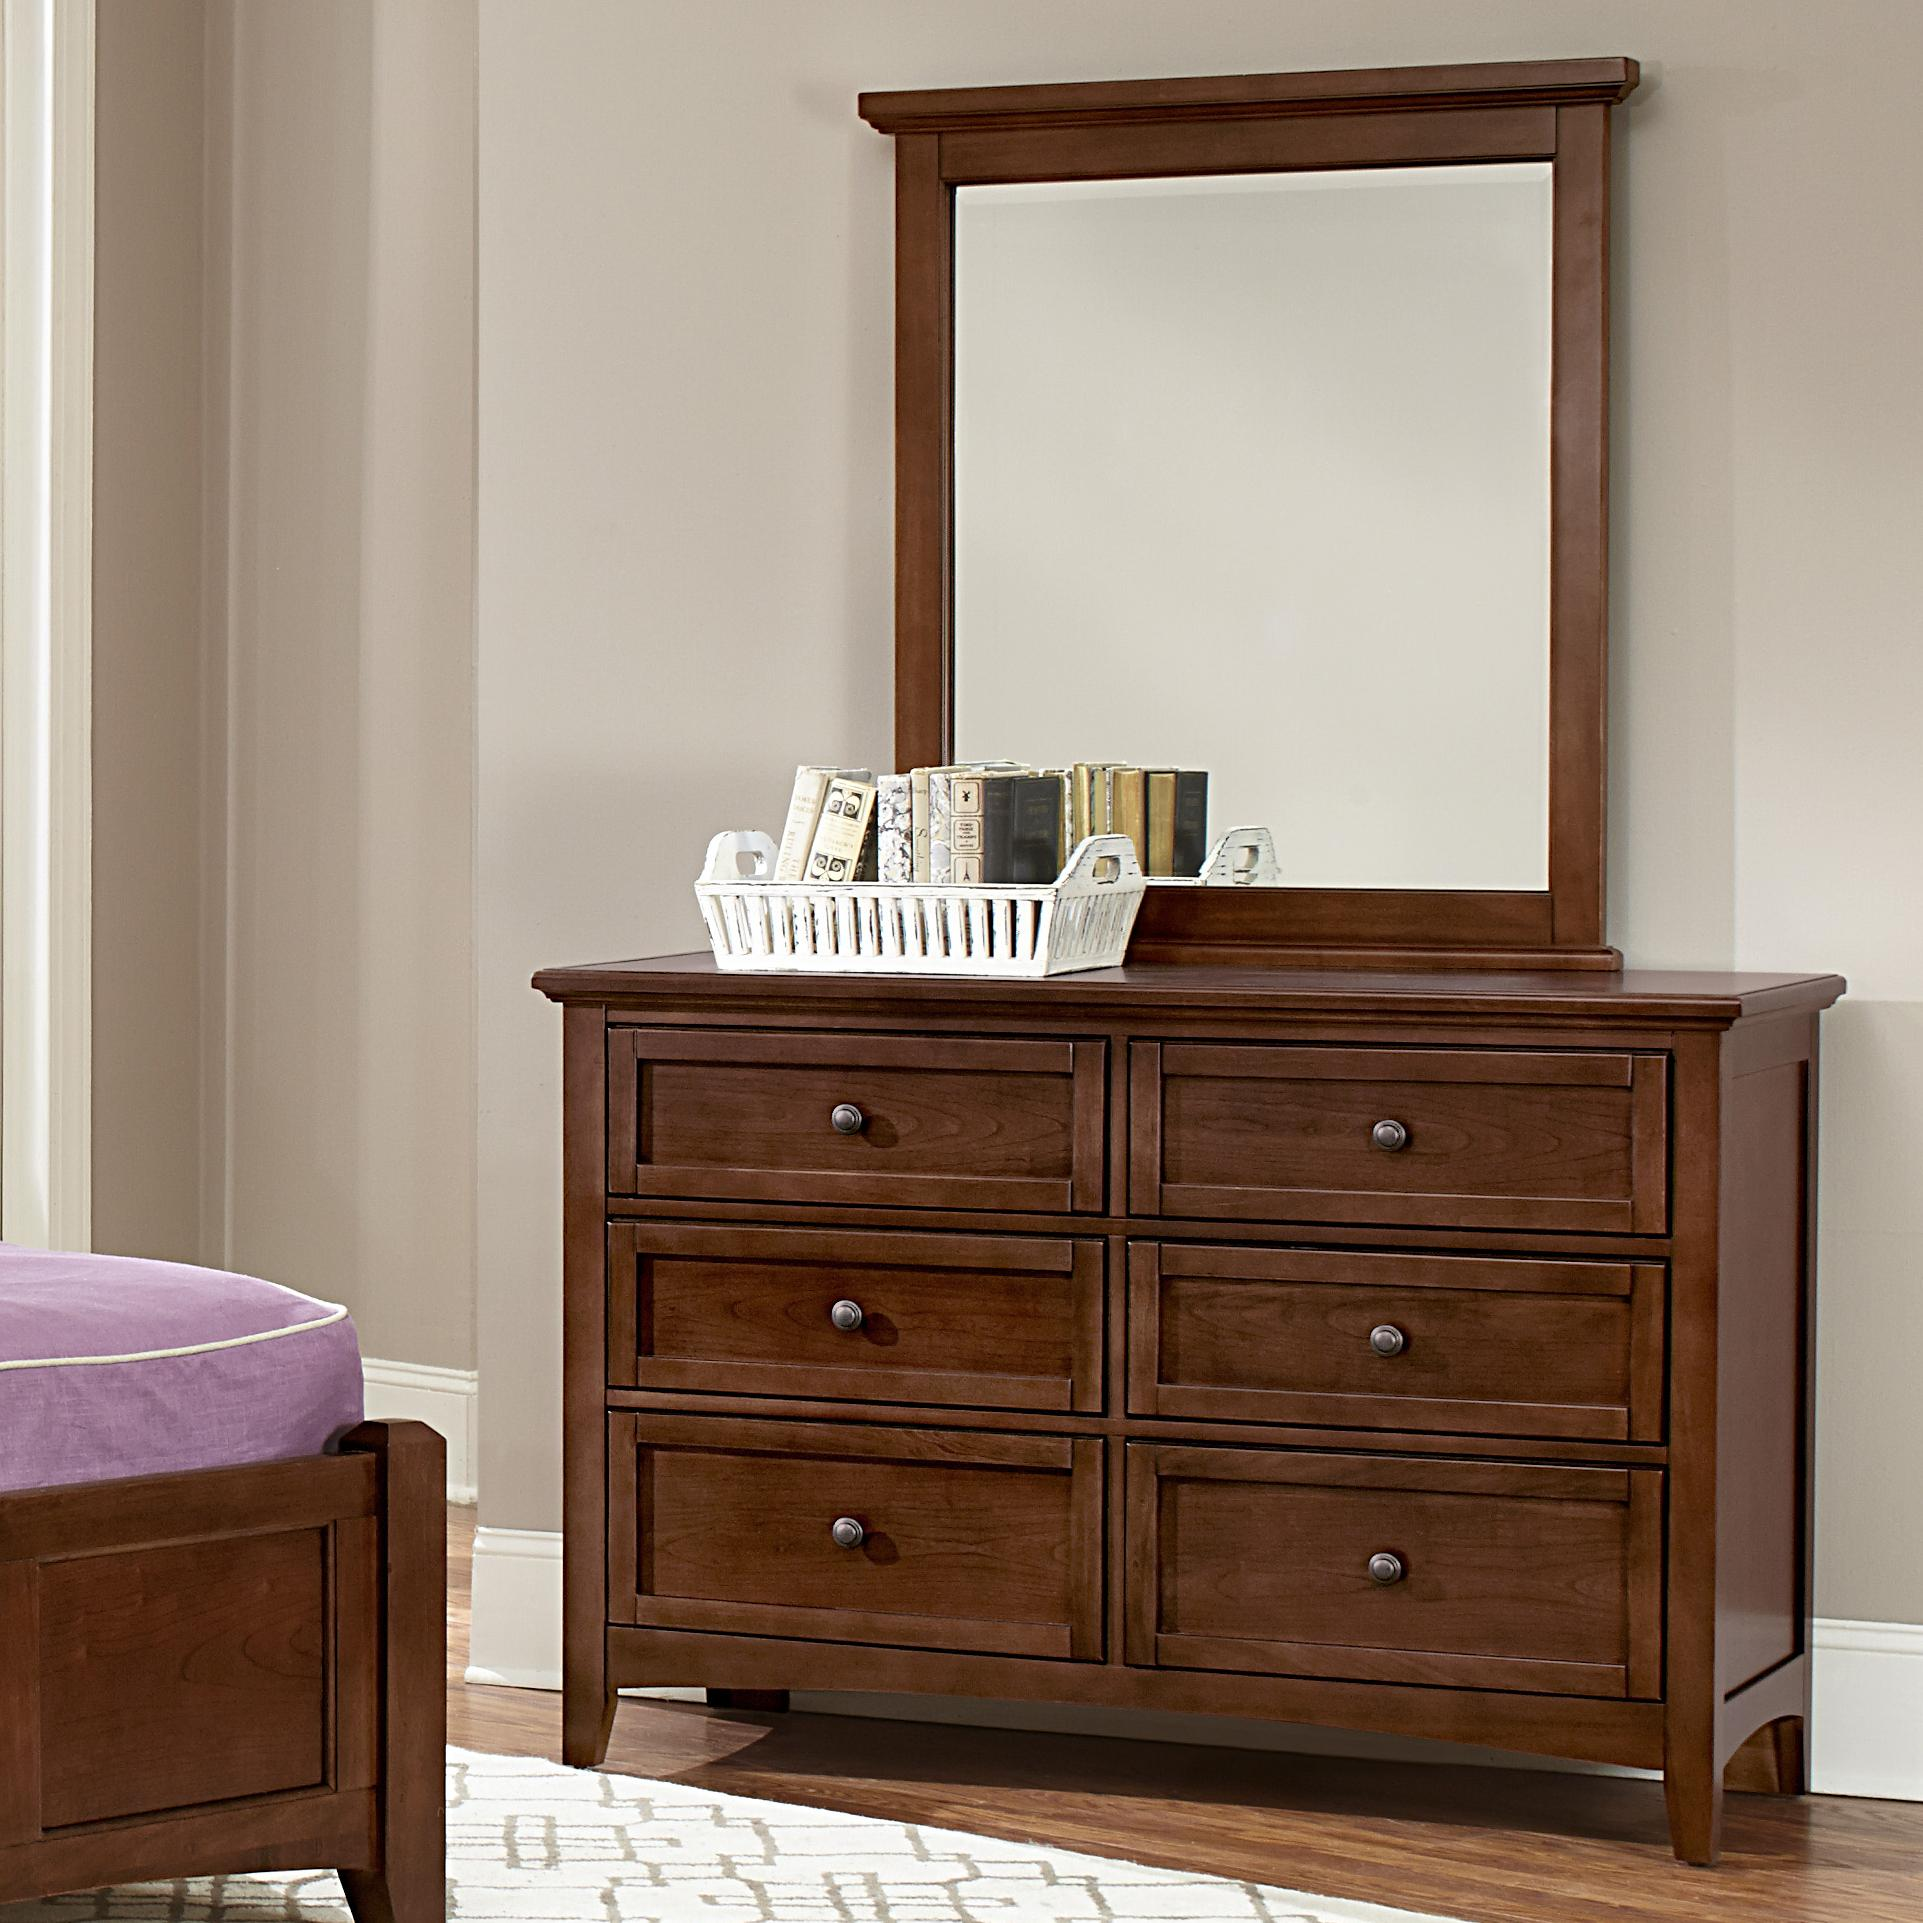 Vaughan Bassett Bonanza Double Dresser & Small Landscape Mirror - Item Number: BB28-001+442